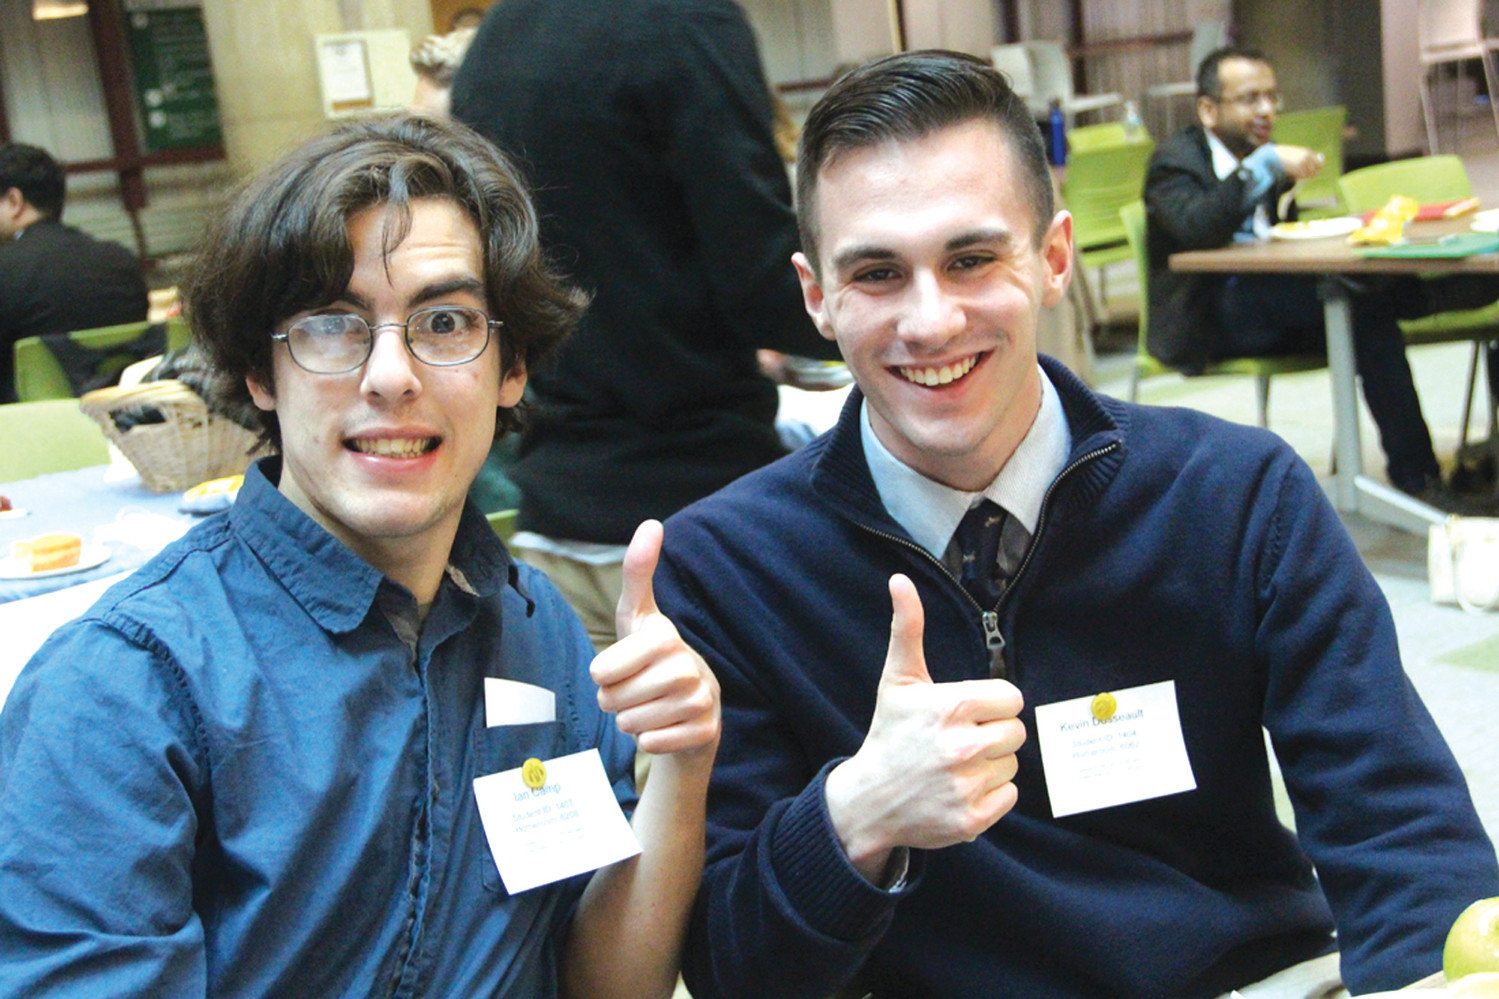 PILGRIM DUO: While they had less than a full team of nine, Ian Camp and Kevin Dusseault of Pilgrim competed in the RI Academic Decathlon held Sunday at the Knight Campus of CCRI.